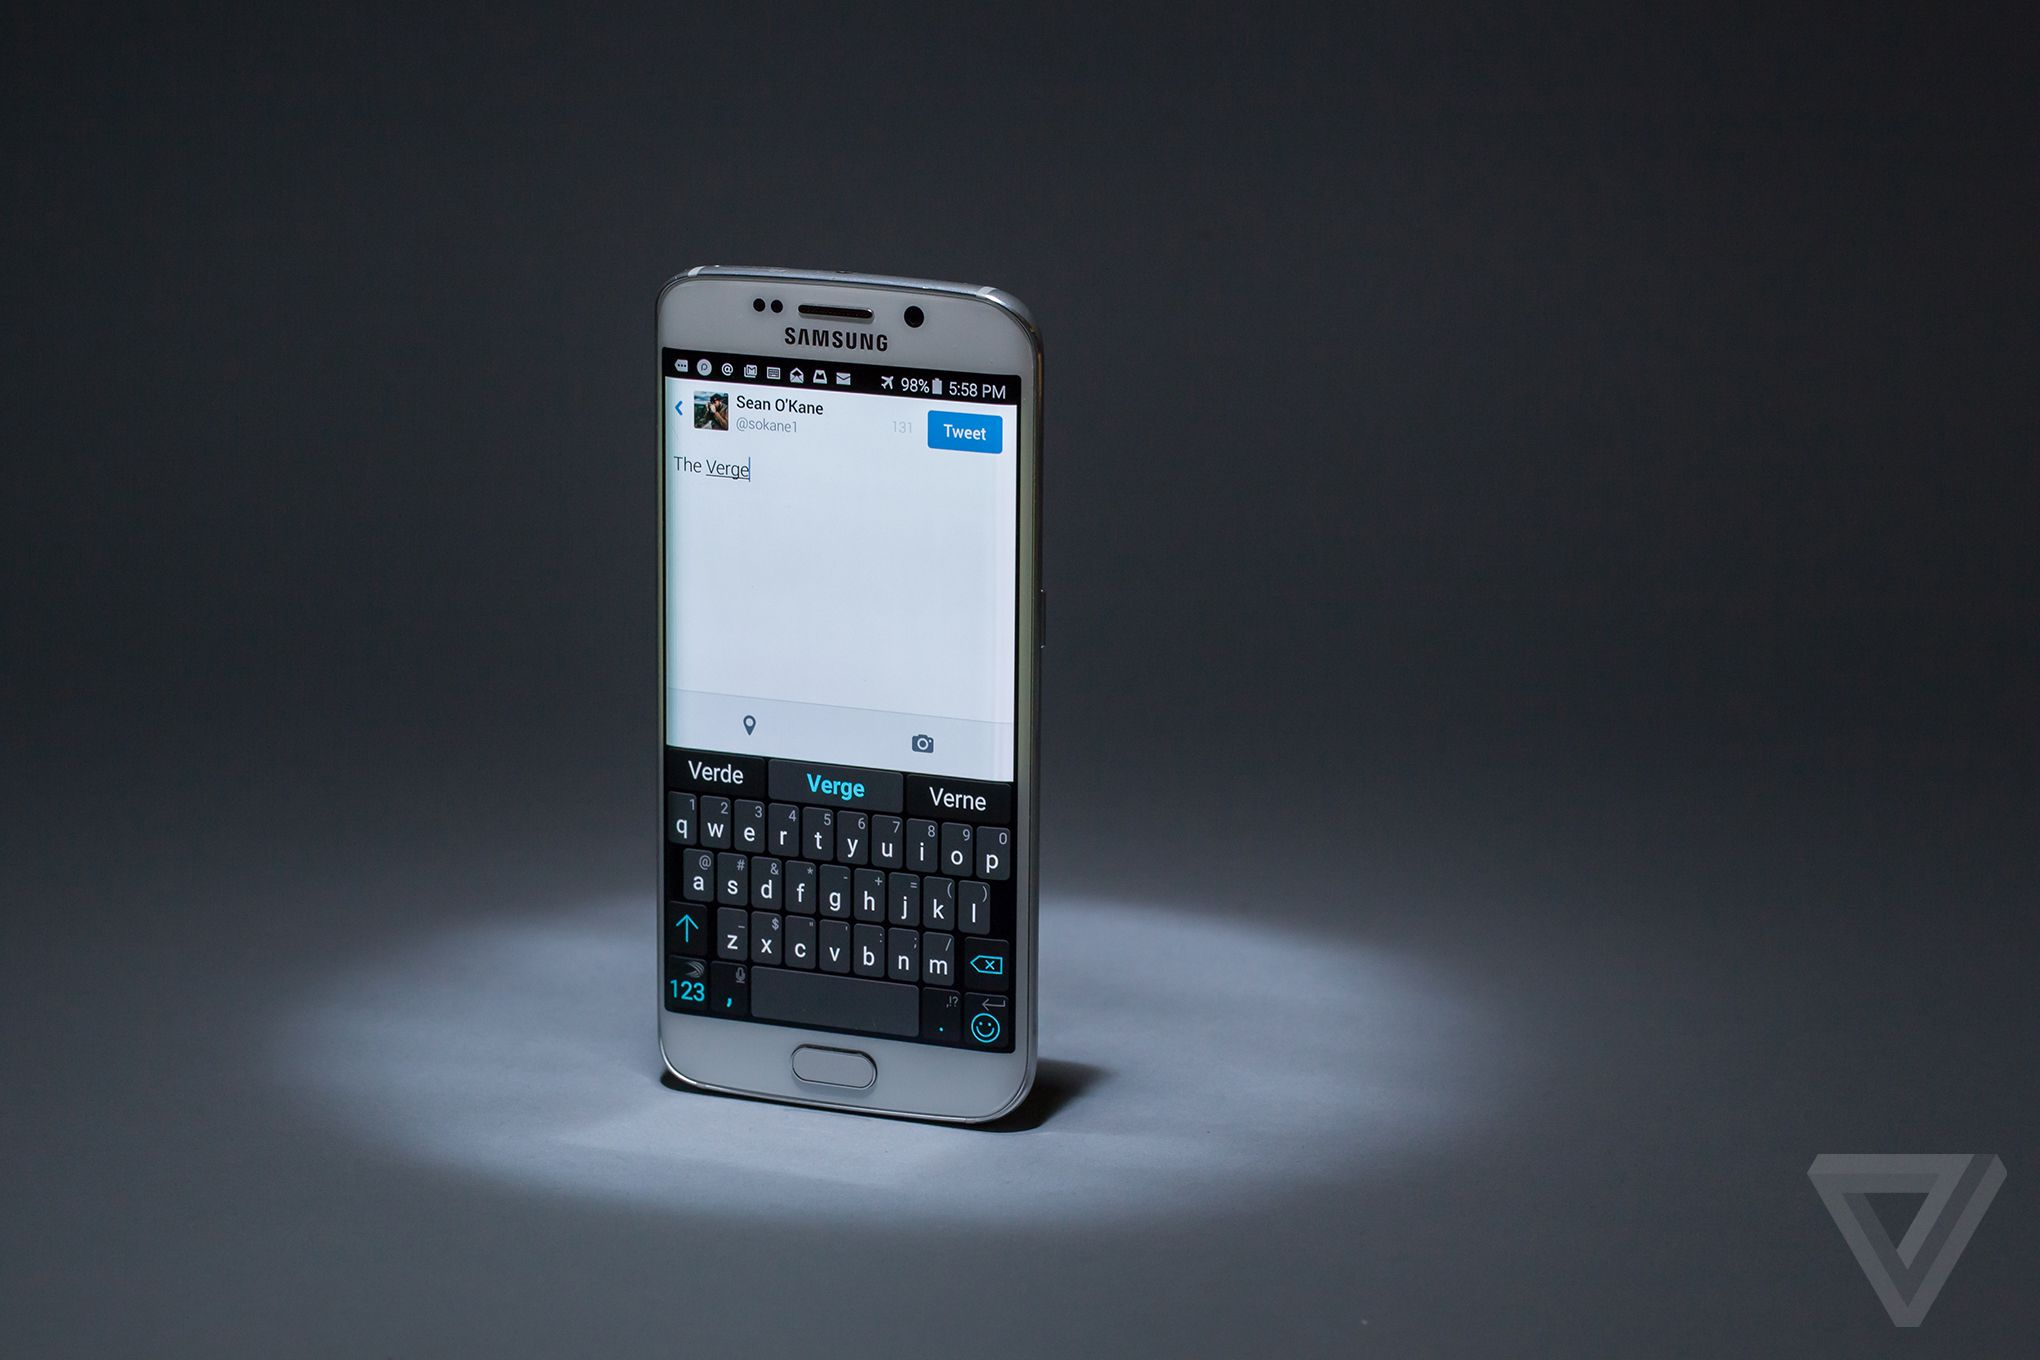 Phone Best Keyboard For Android Phone the best keyboard for android verge timn keyboards swiftkey android